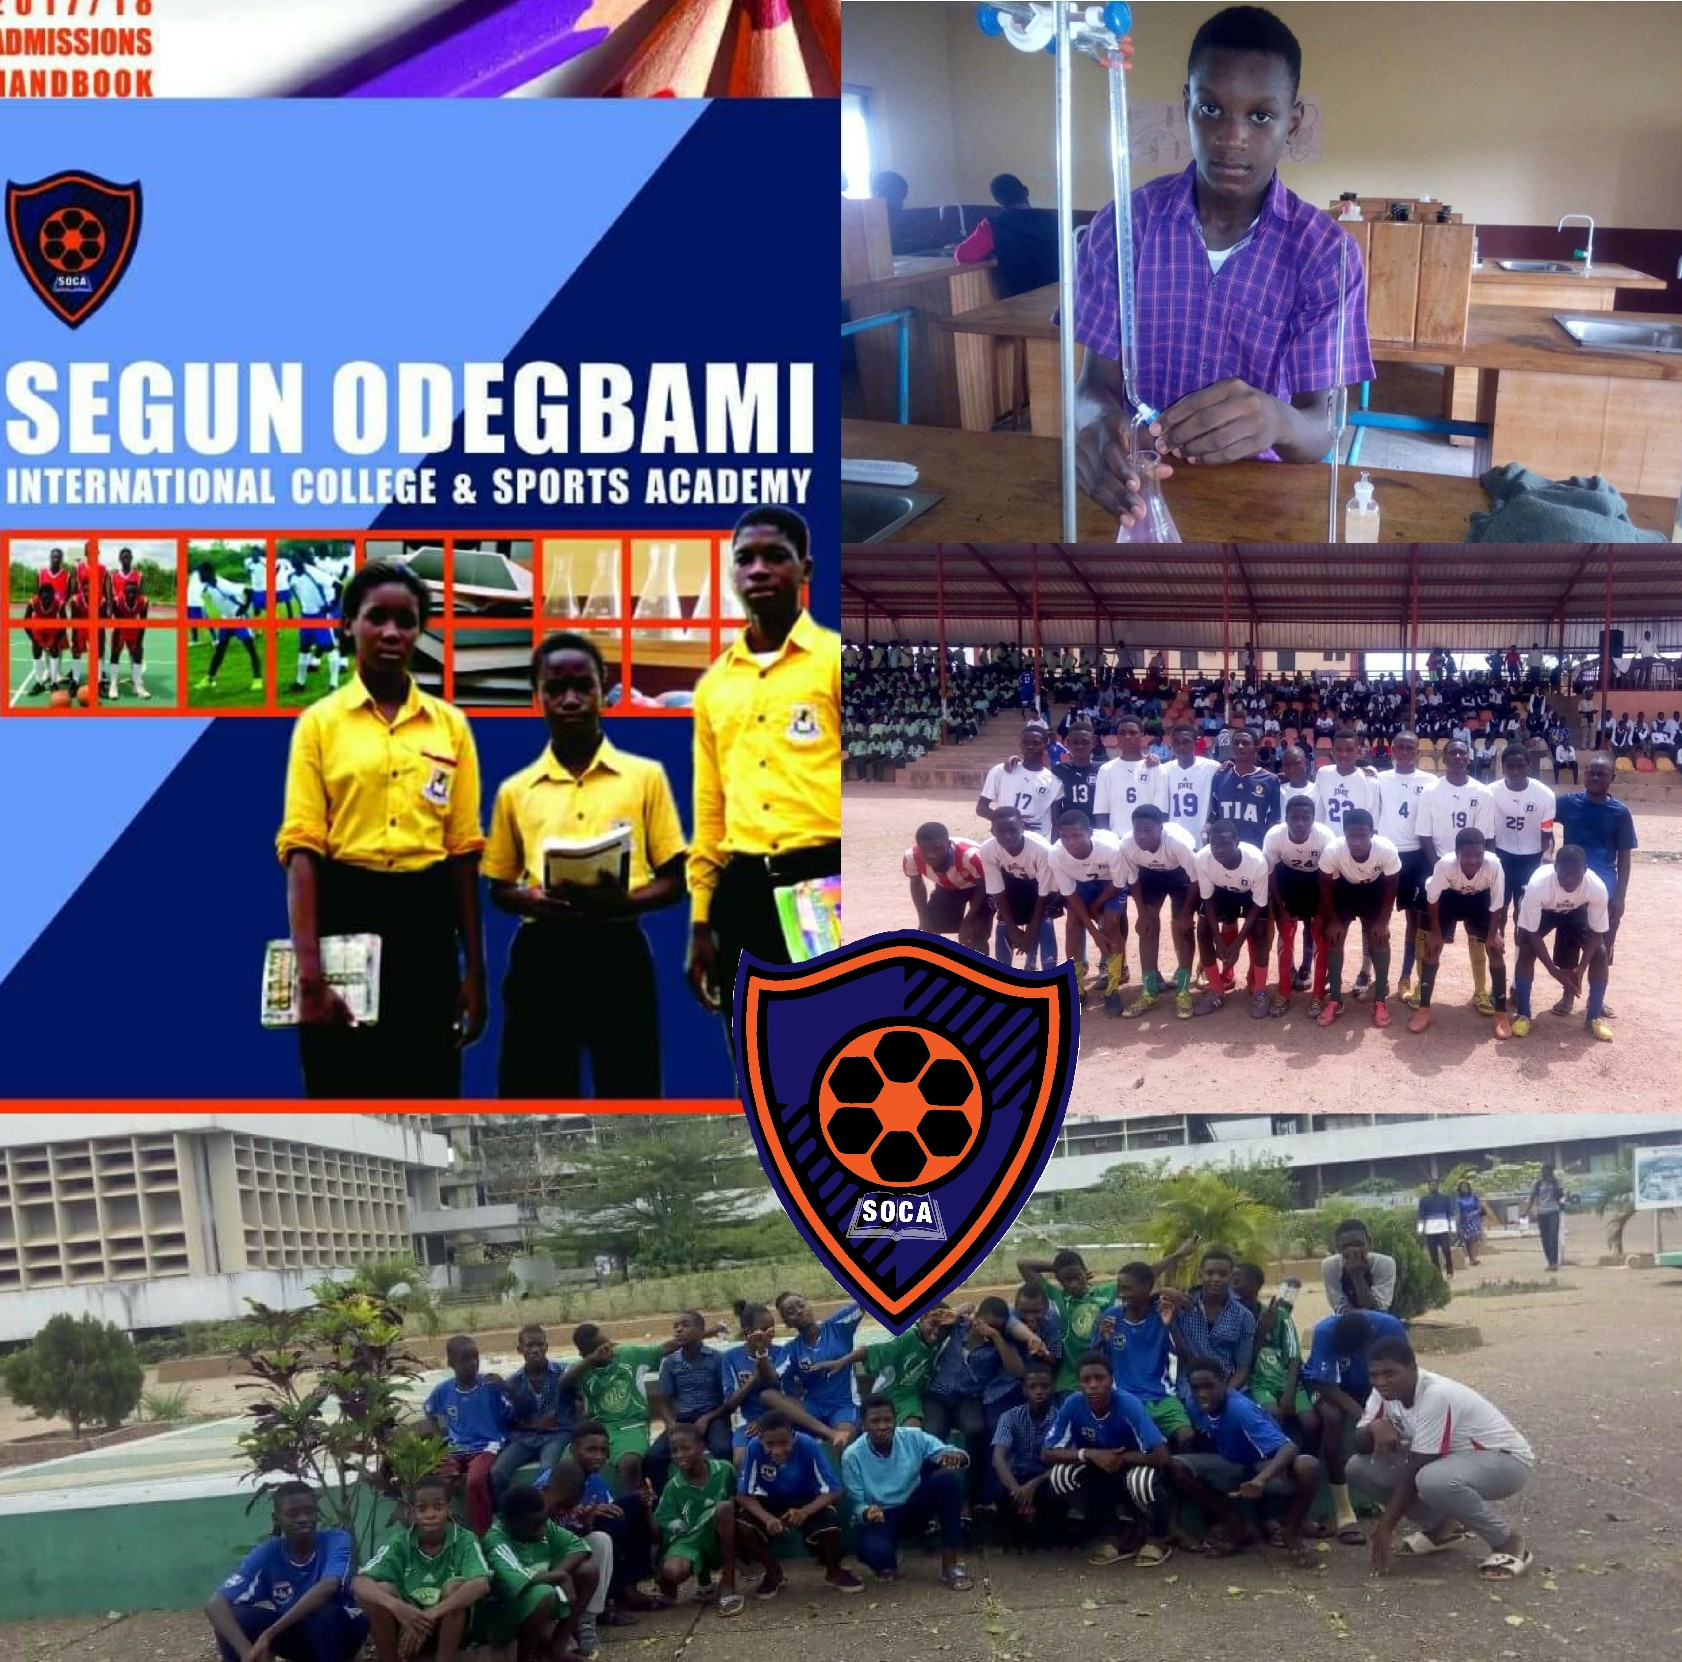 Odegbami: SOCA – The School Of Sports Excellence!